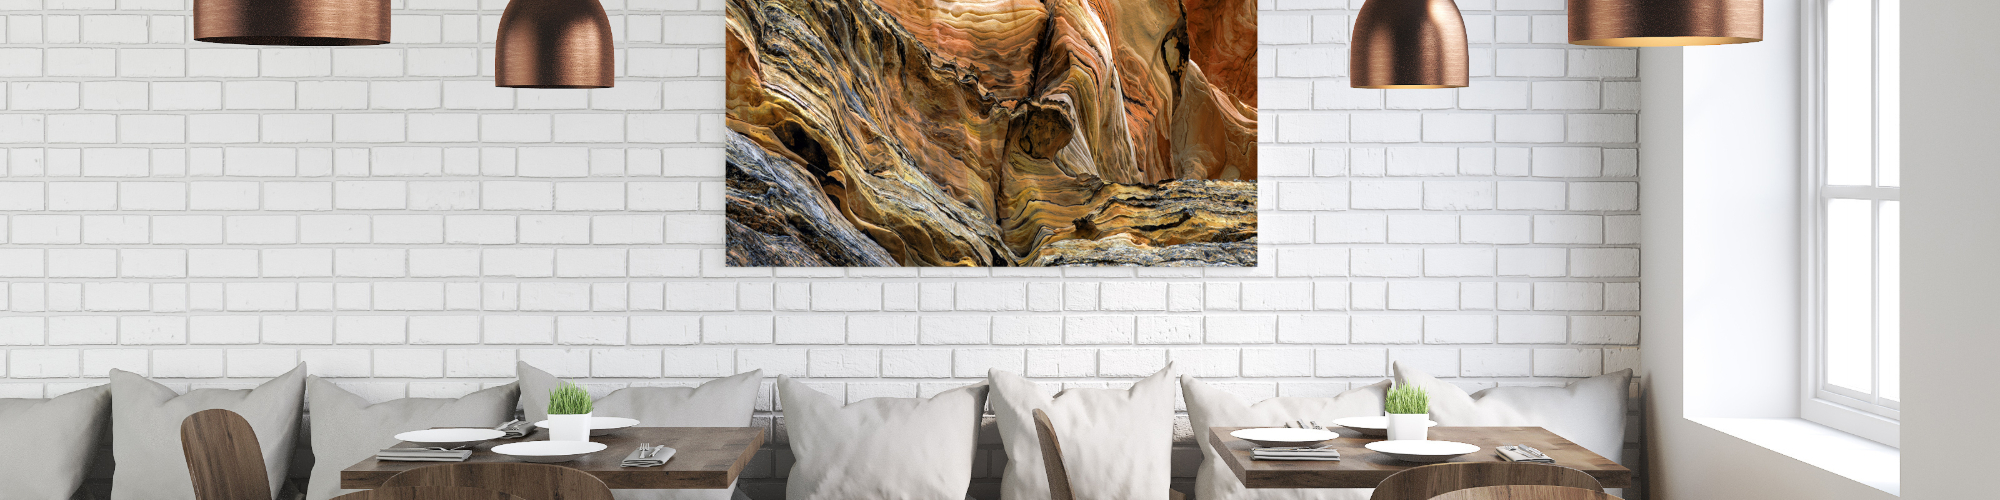 restaurant with art acoustic panel